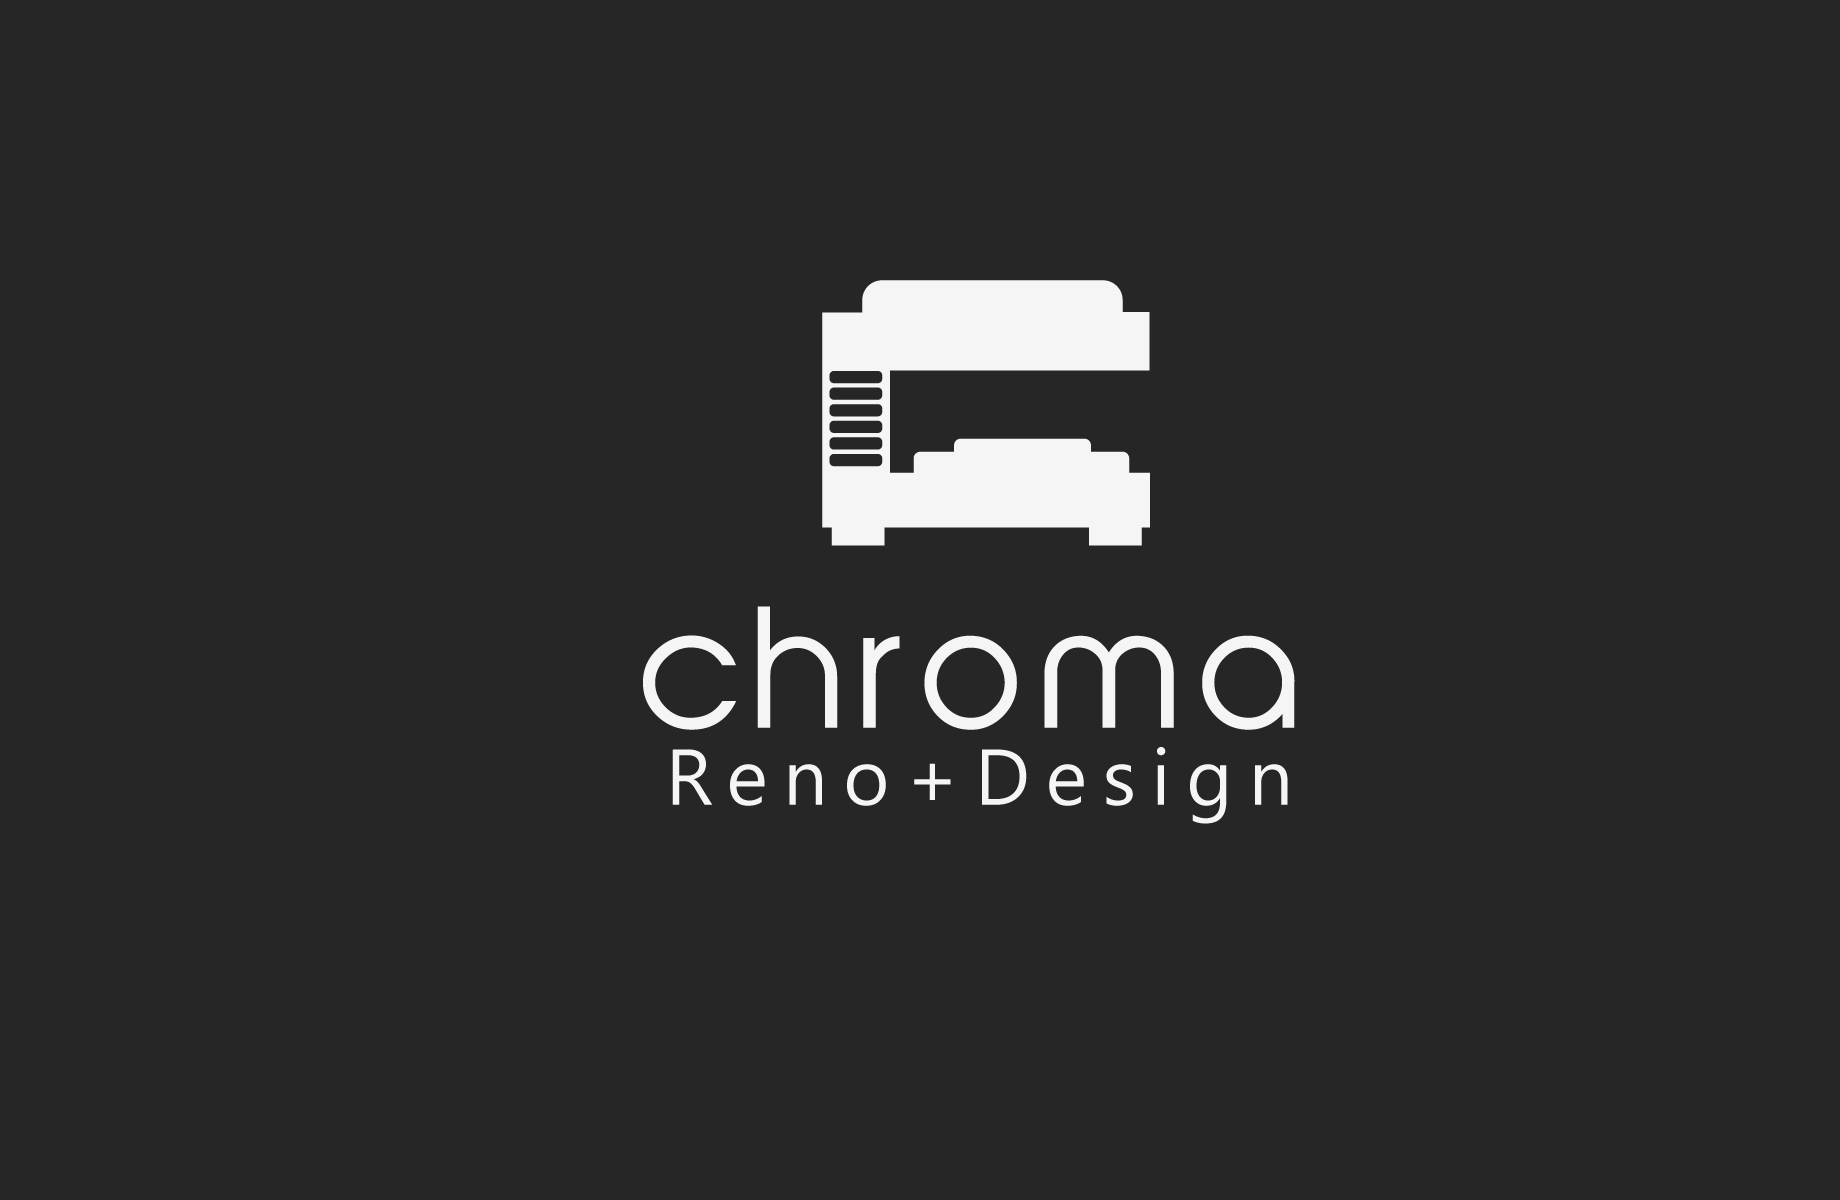 Logo Design by Jan Chua - Entry No. 190 in the Logo Design Contest Inspiring Logo Design for Chroma Reno+Design.